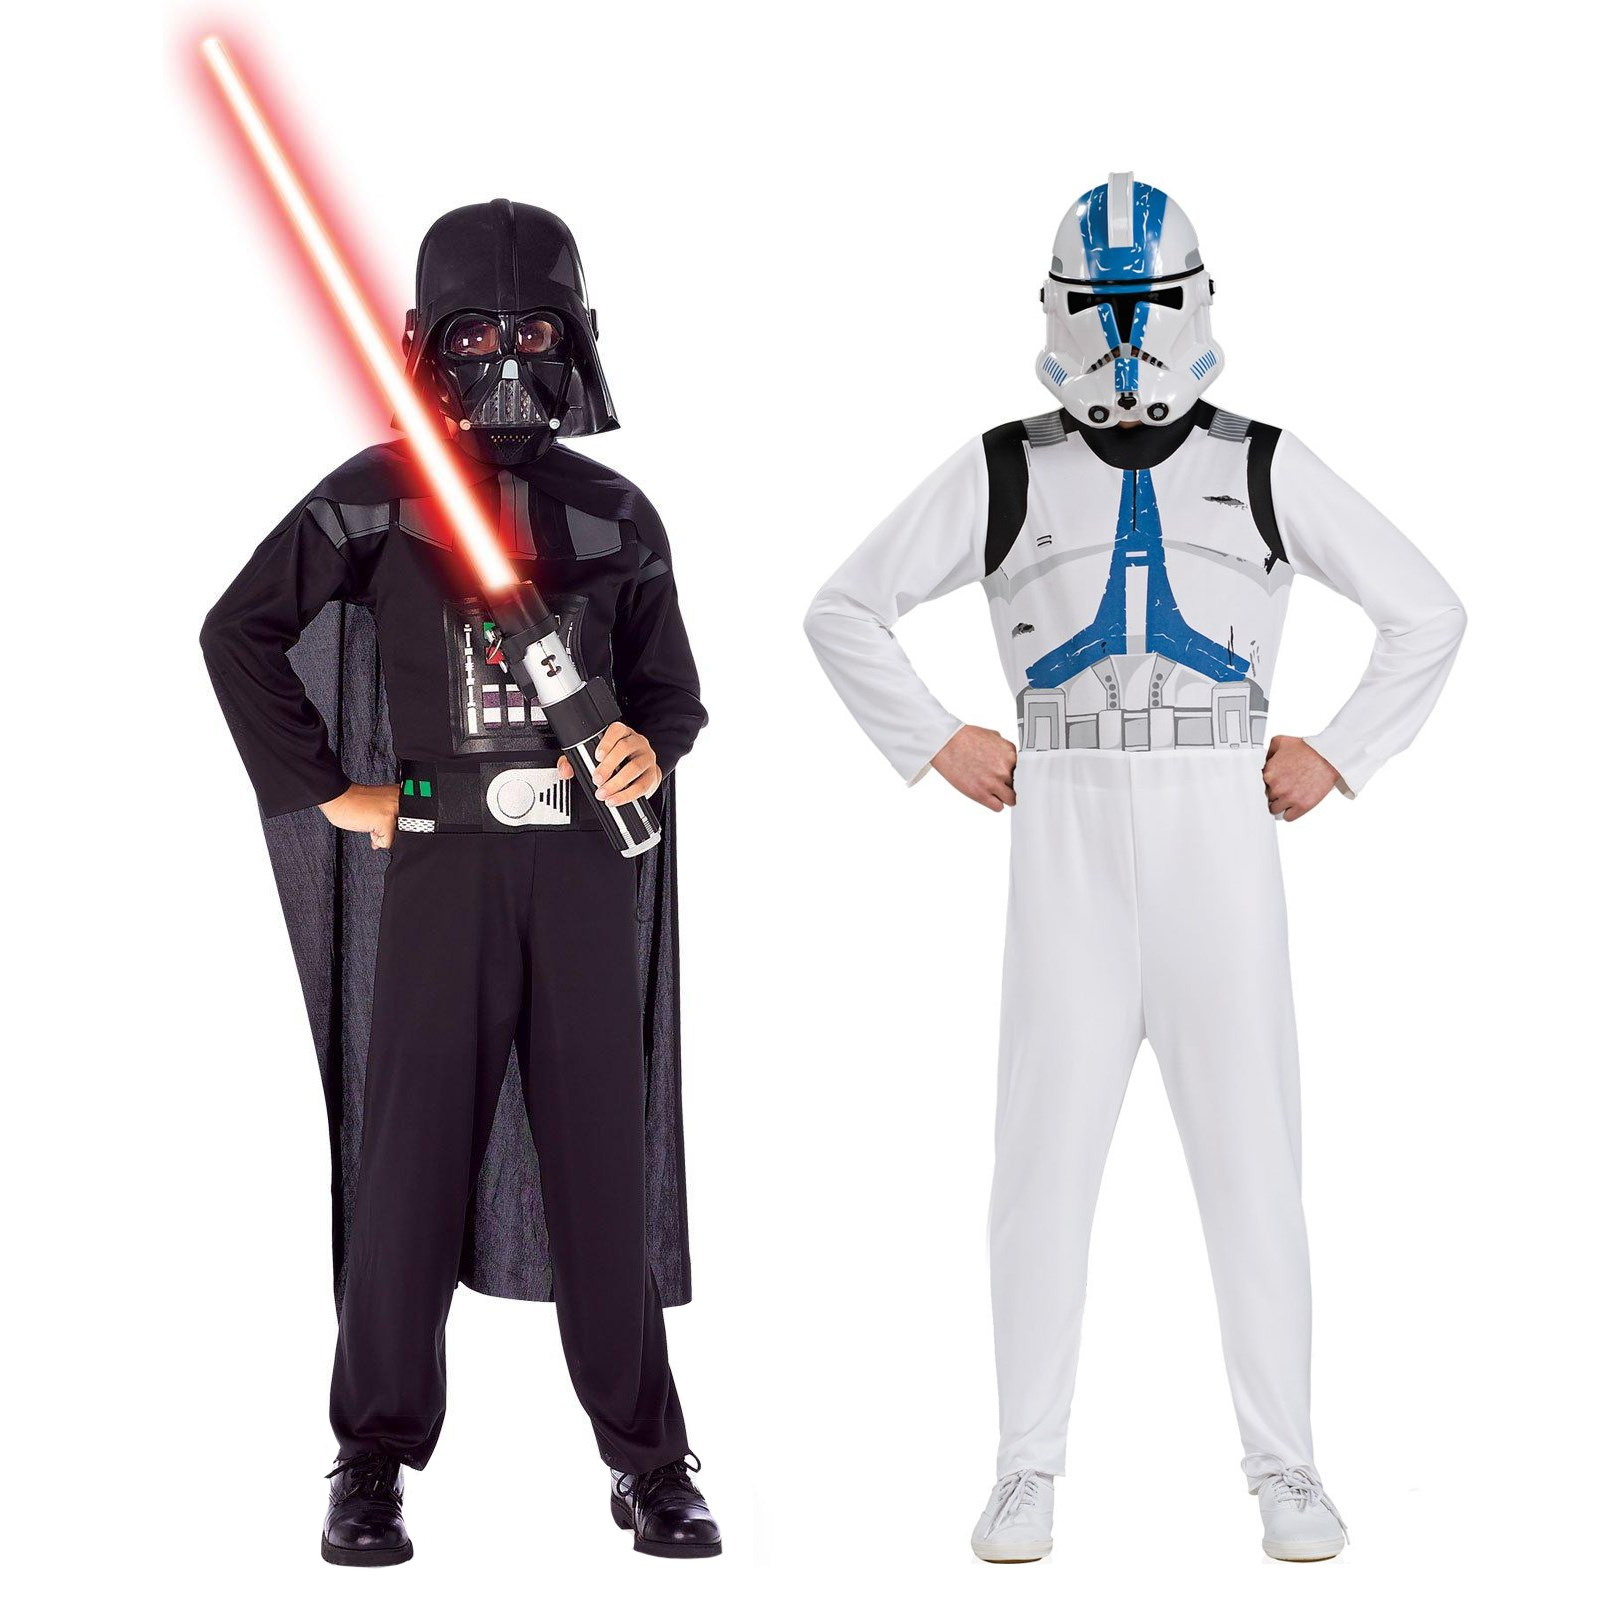 Star Wars - Darth Vader Clone Trooper Dress Up Set